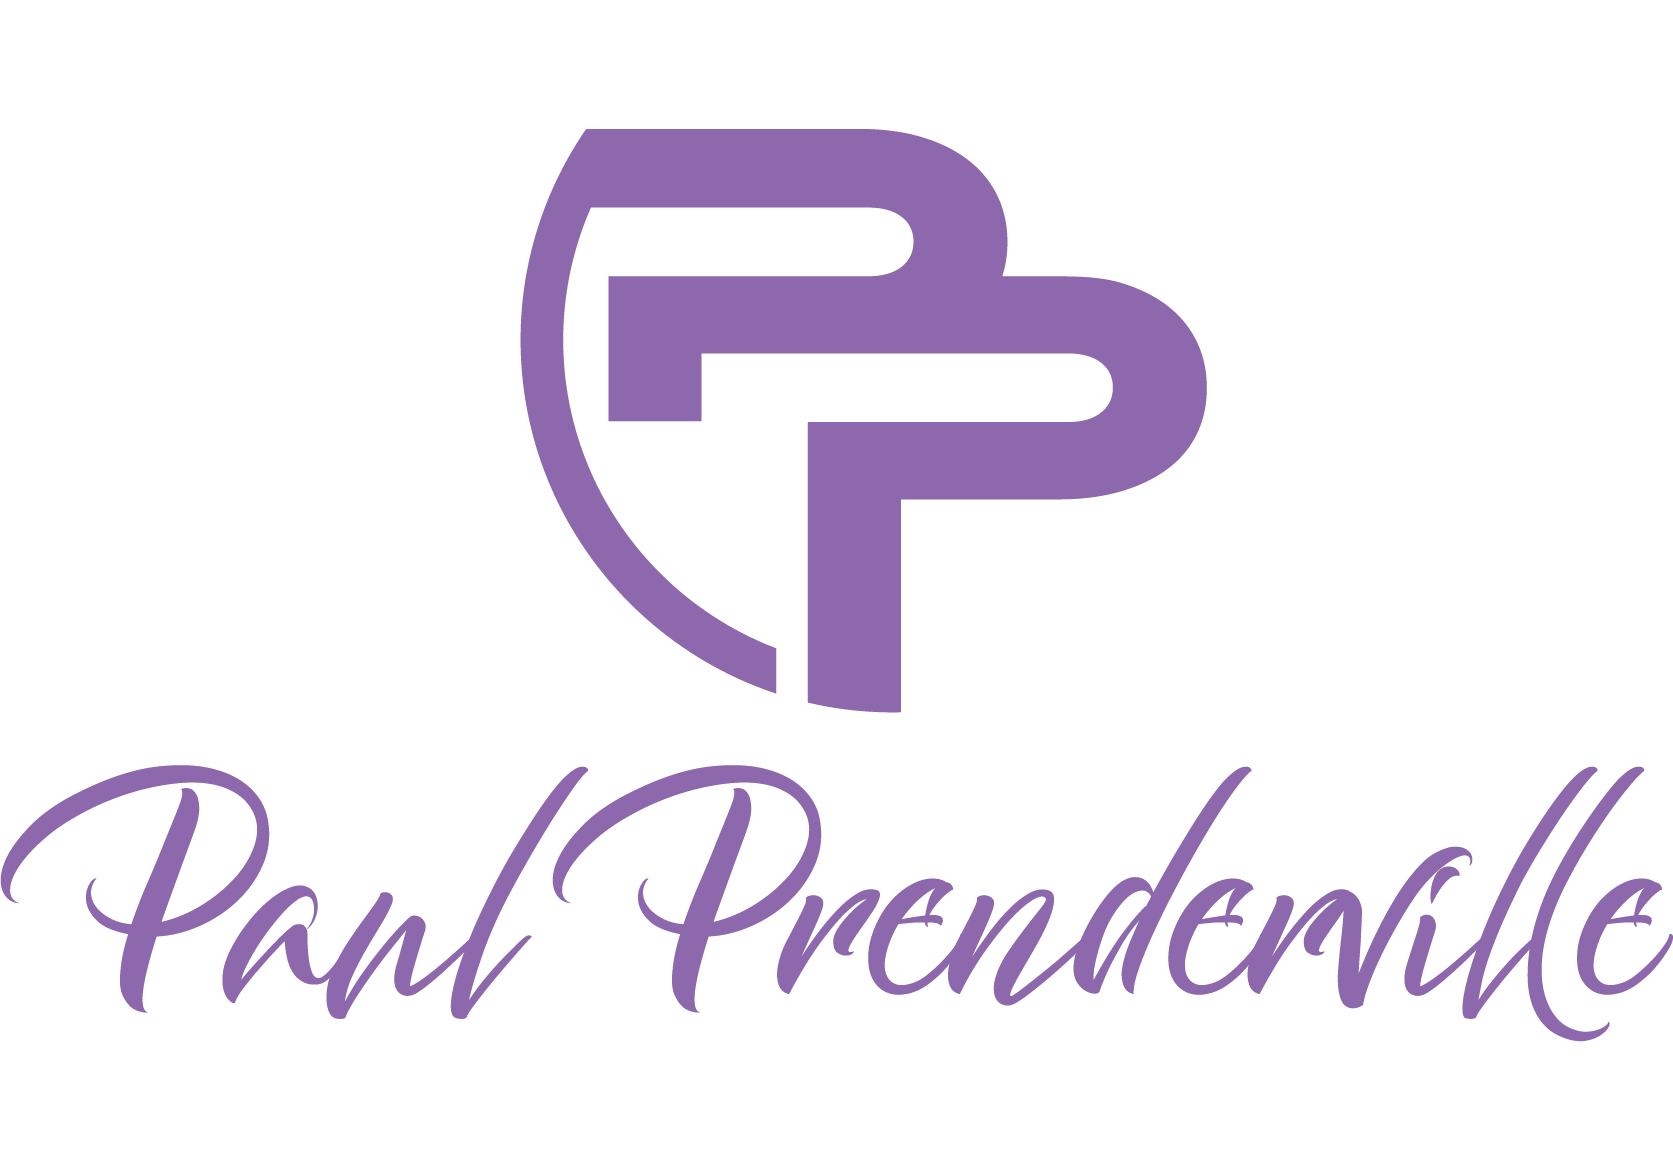 Paul Prenderville Wedding DJ